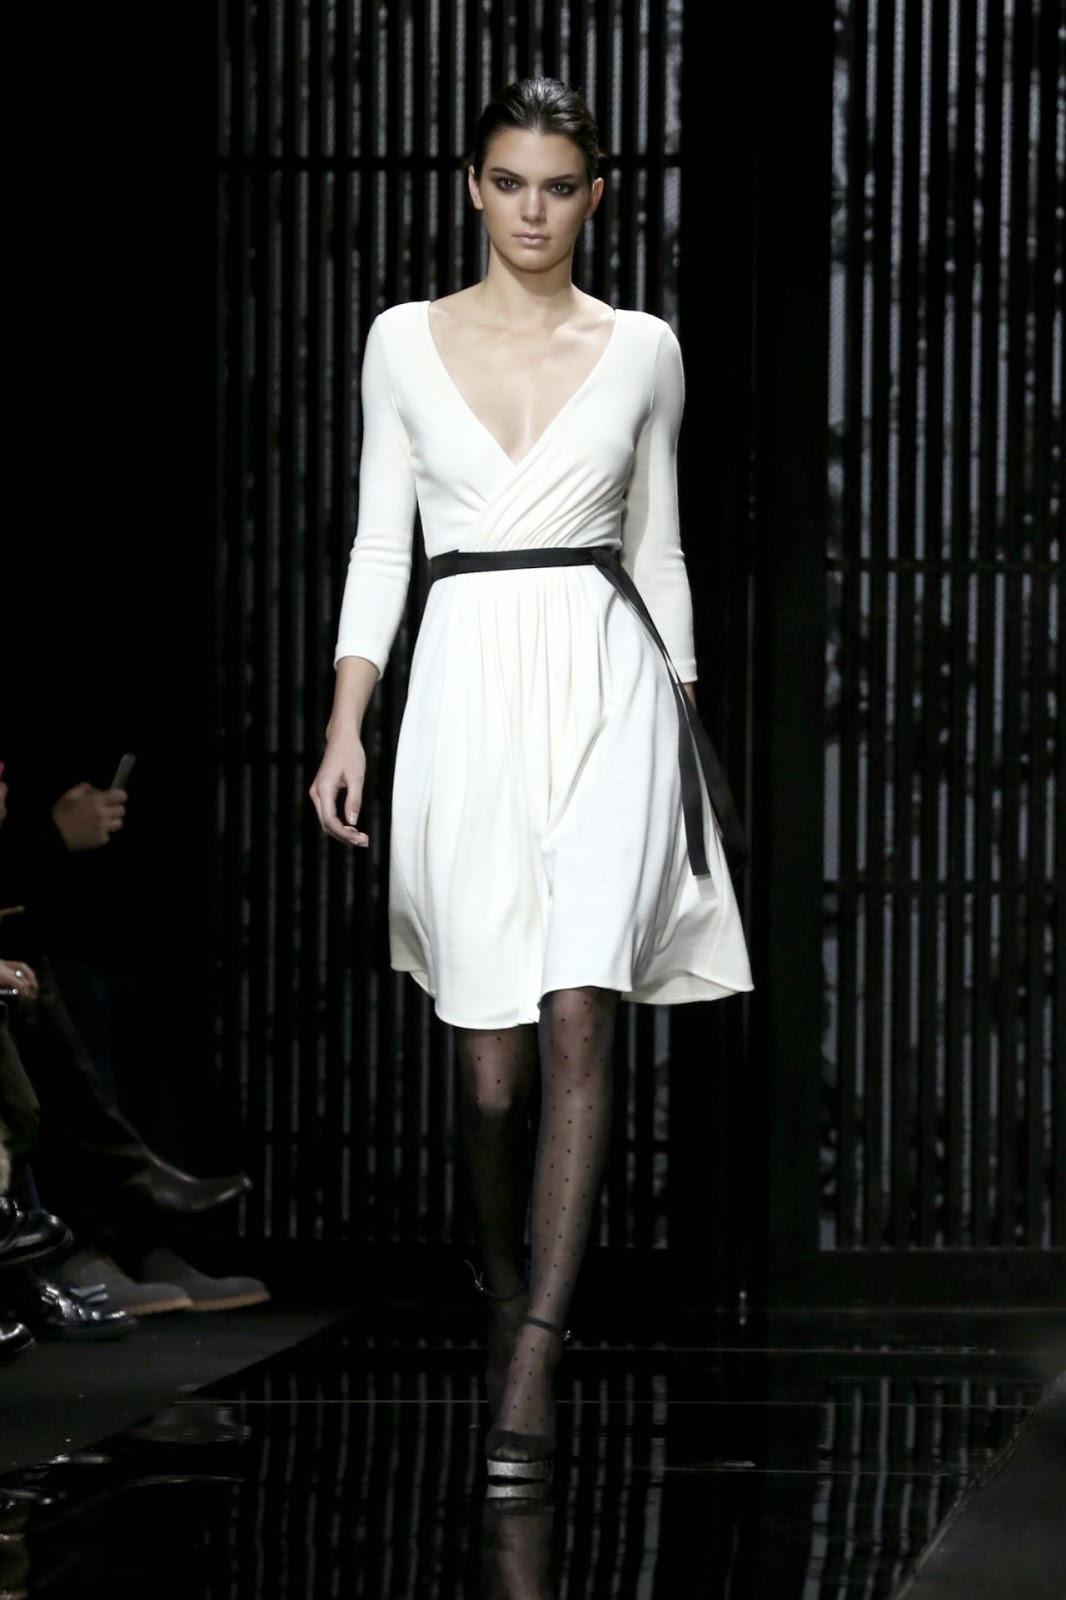 Kendall Jenner Is Classy In White At The Diane Von Furstenberg Fall Winter 2015 New York Fashion